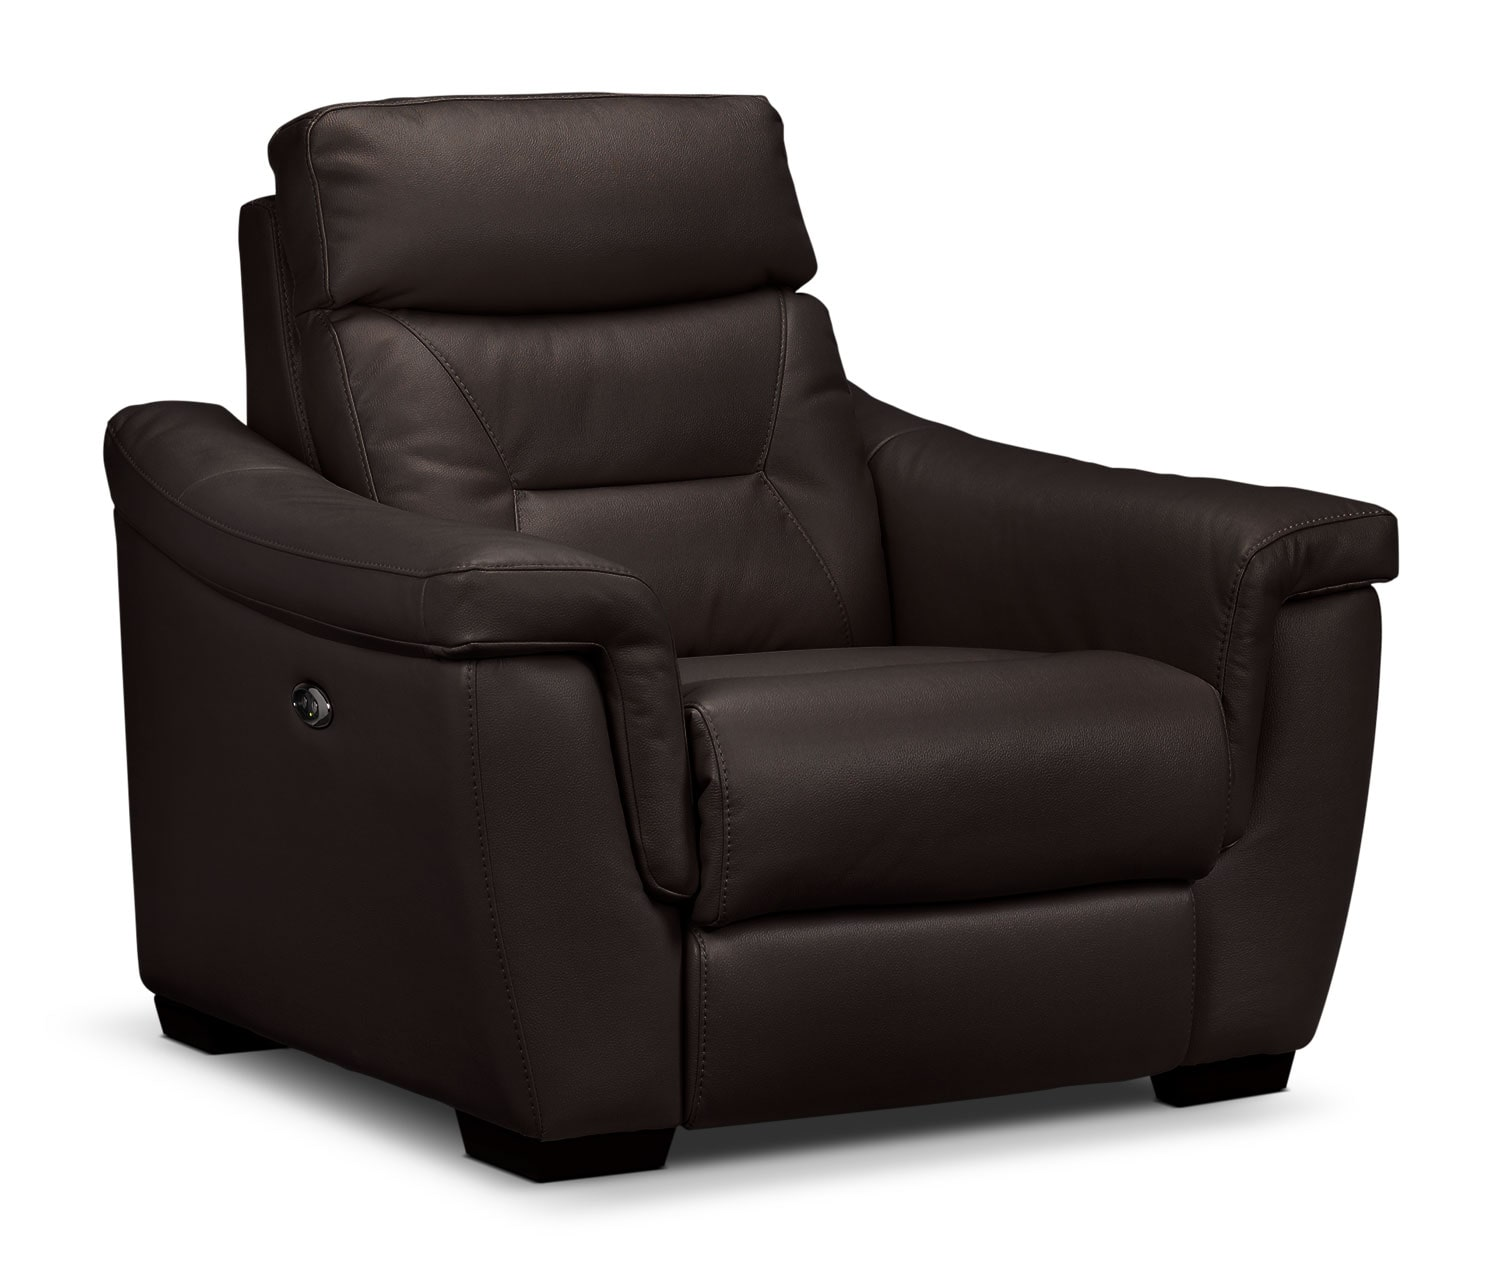 Living Room Furniture - Ralston Power Recliner - Walnut